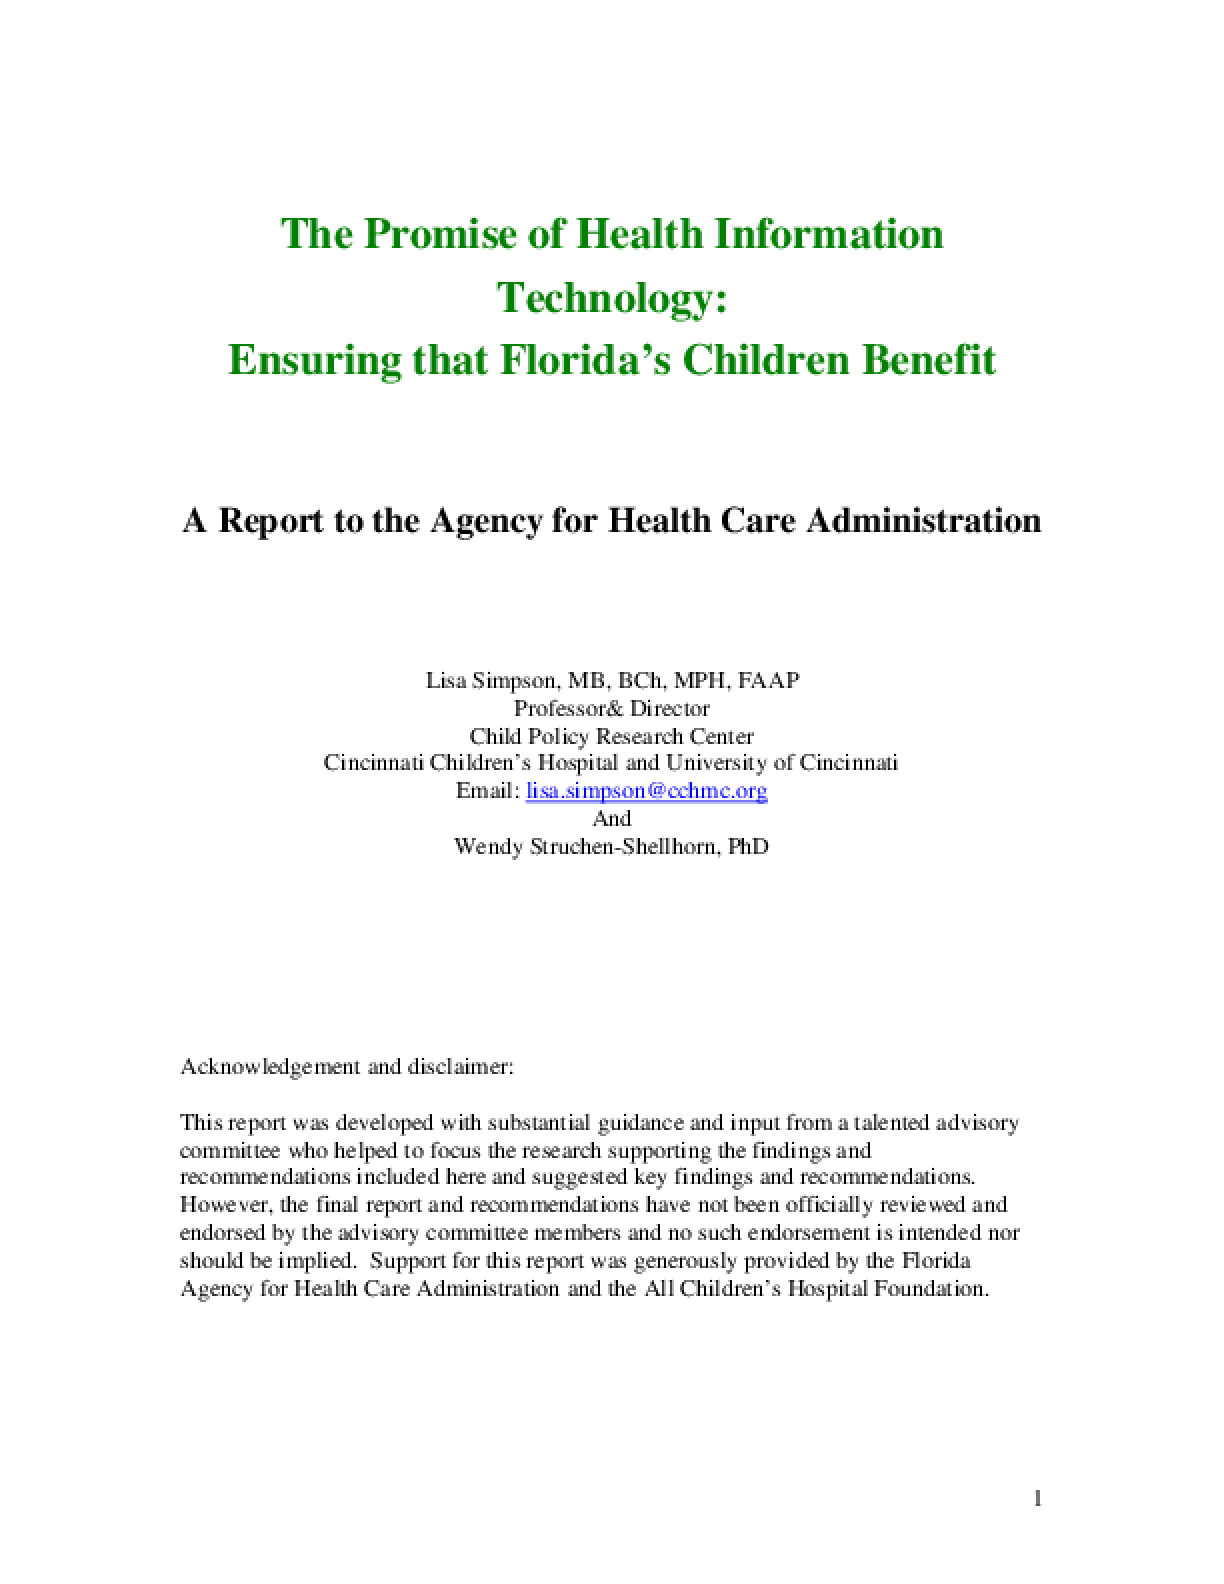 The Promise of Health Information Technology: Ensuring that Florida's Children Benefit